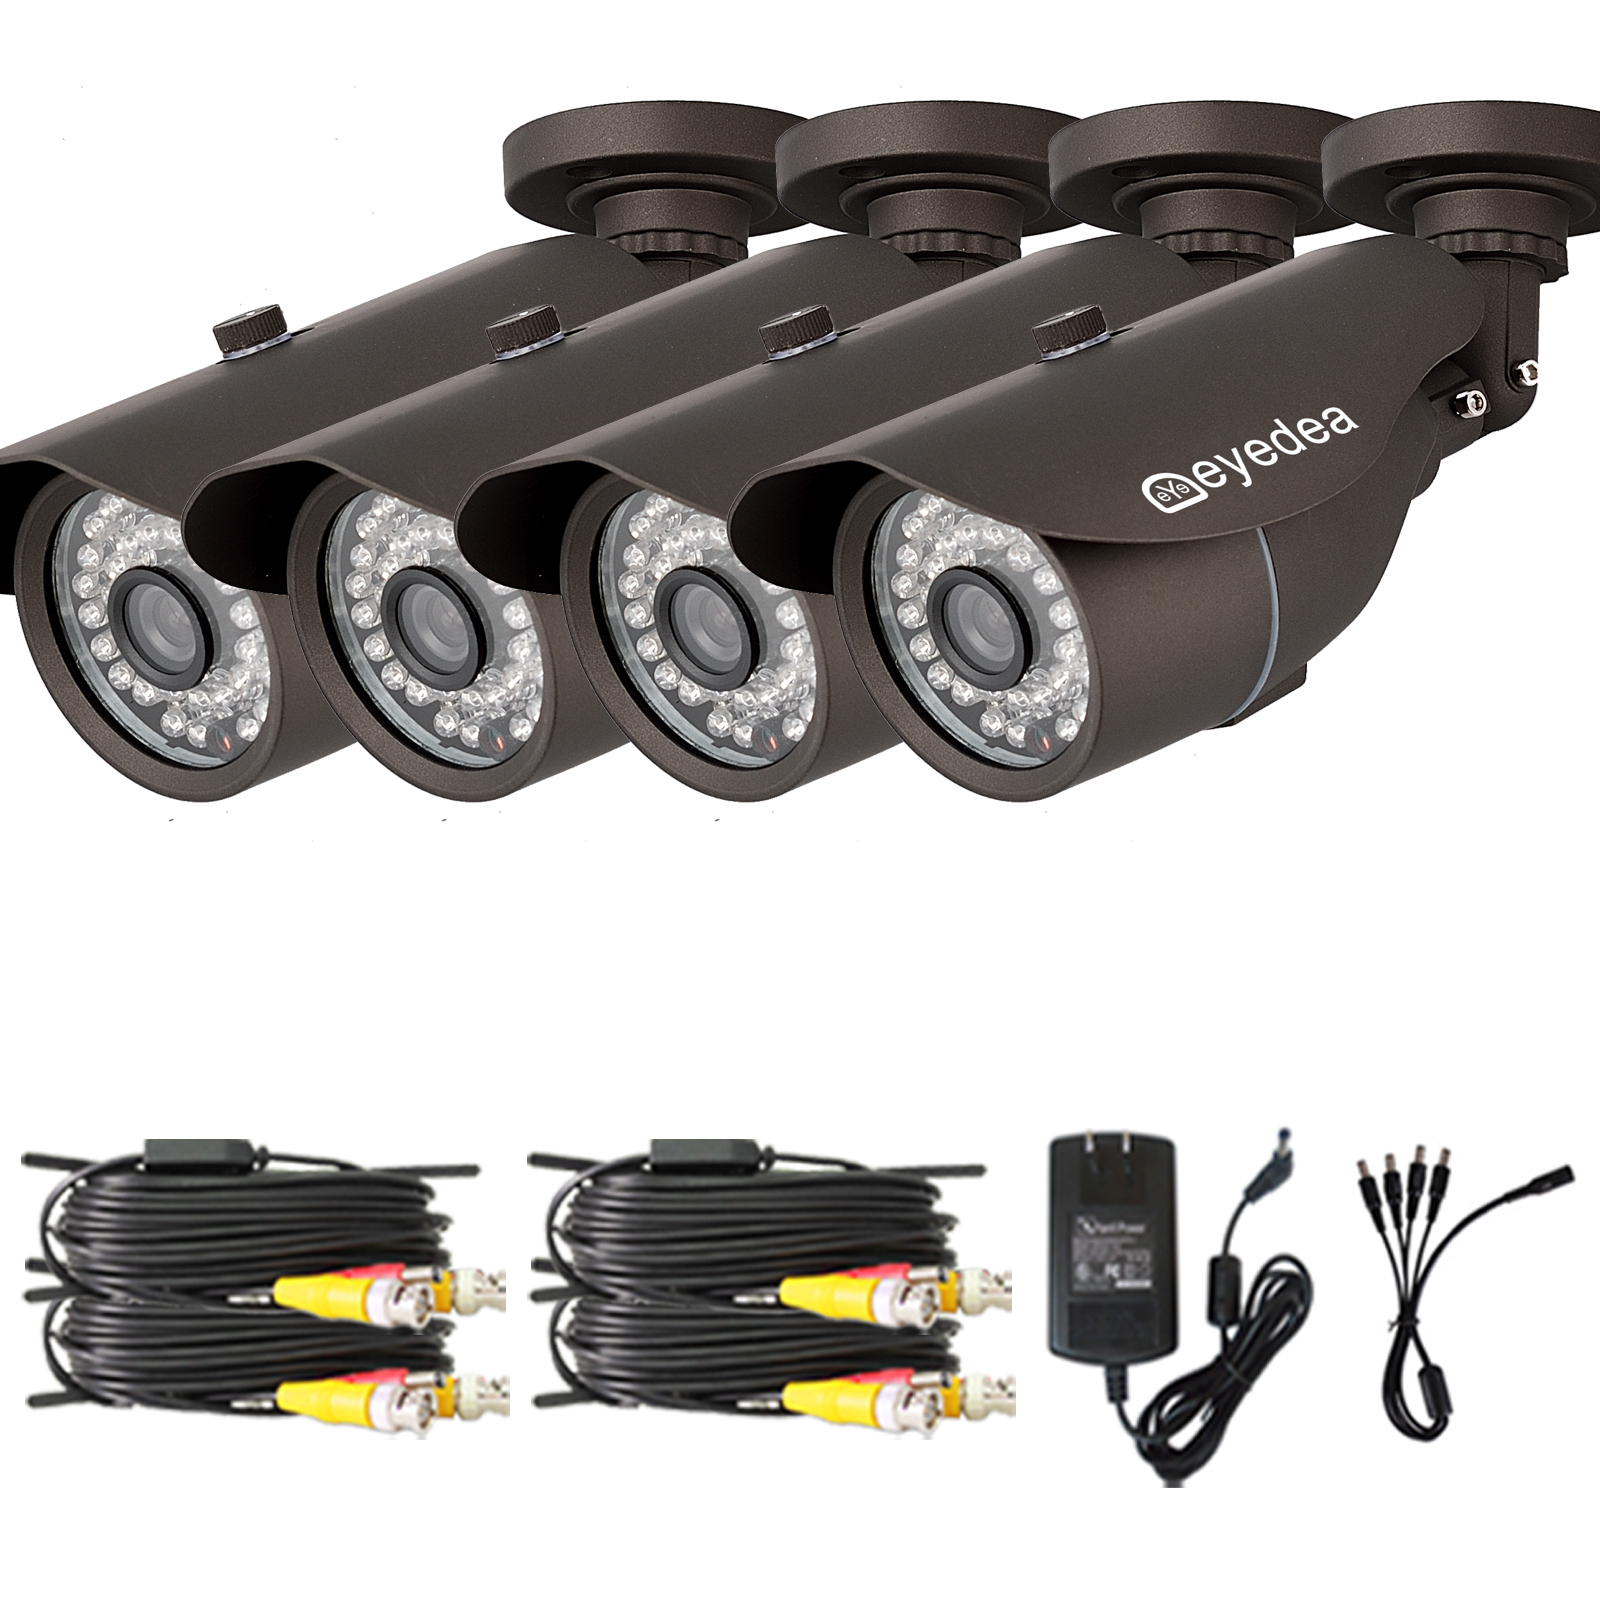 Eyedea 16 Channel 1080N HDMI AHD DVR 3500TVL Outdoor CCTV Security Camera System